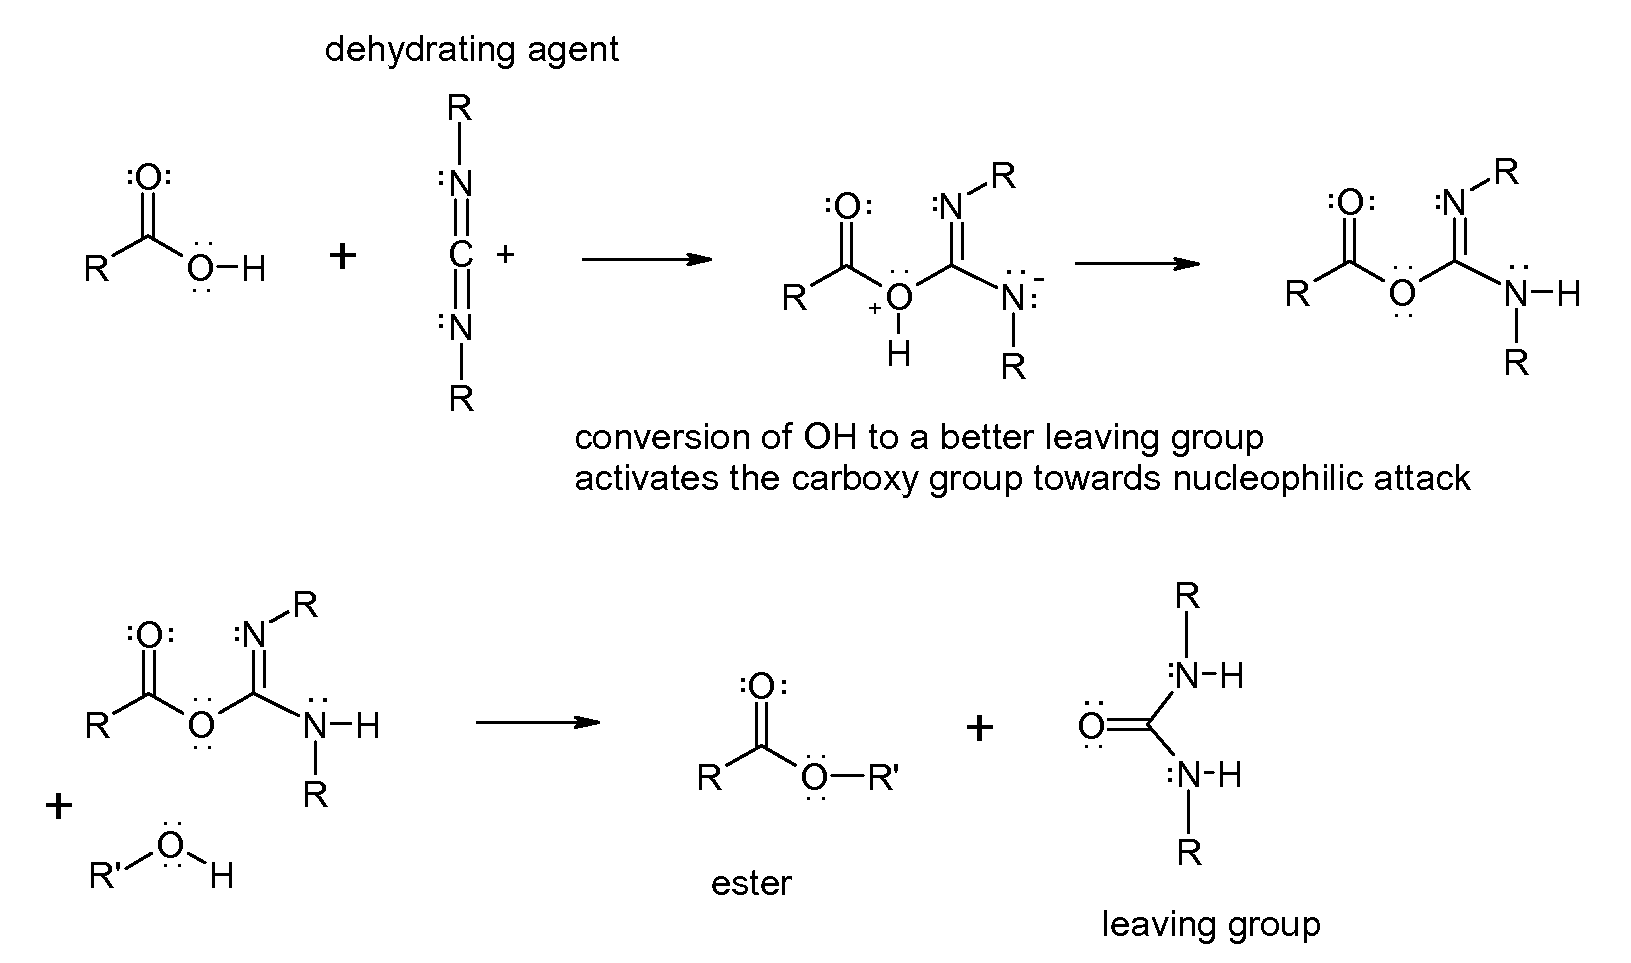 Dehydration Reaction Example chemical dehydrating agent